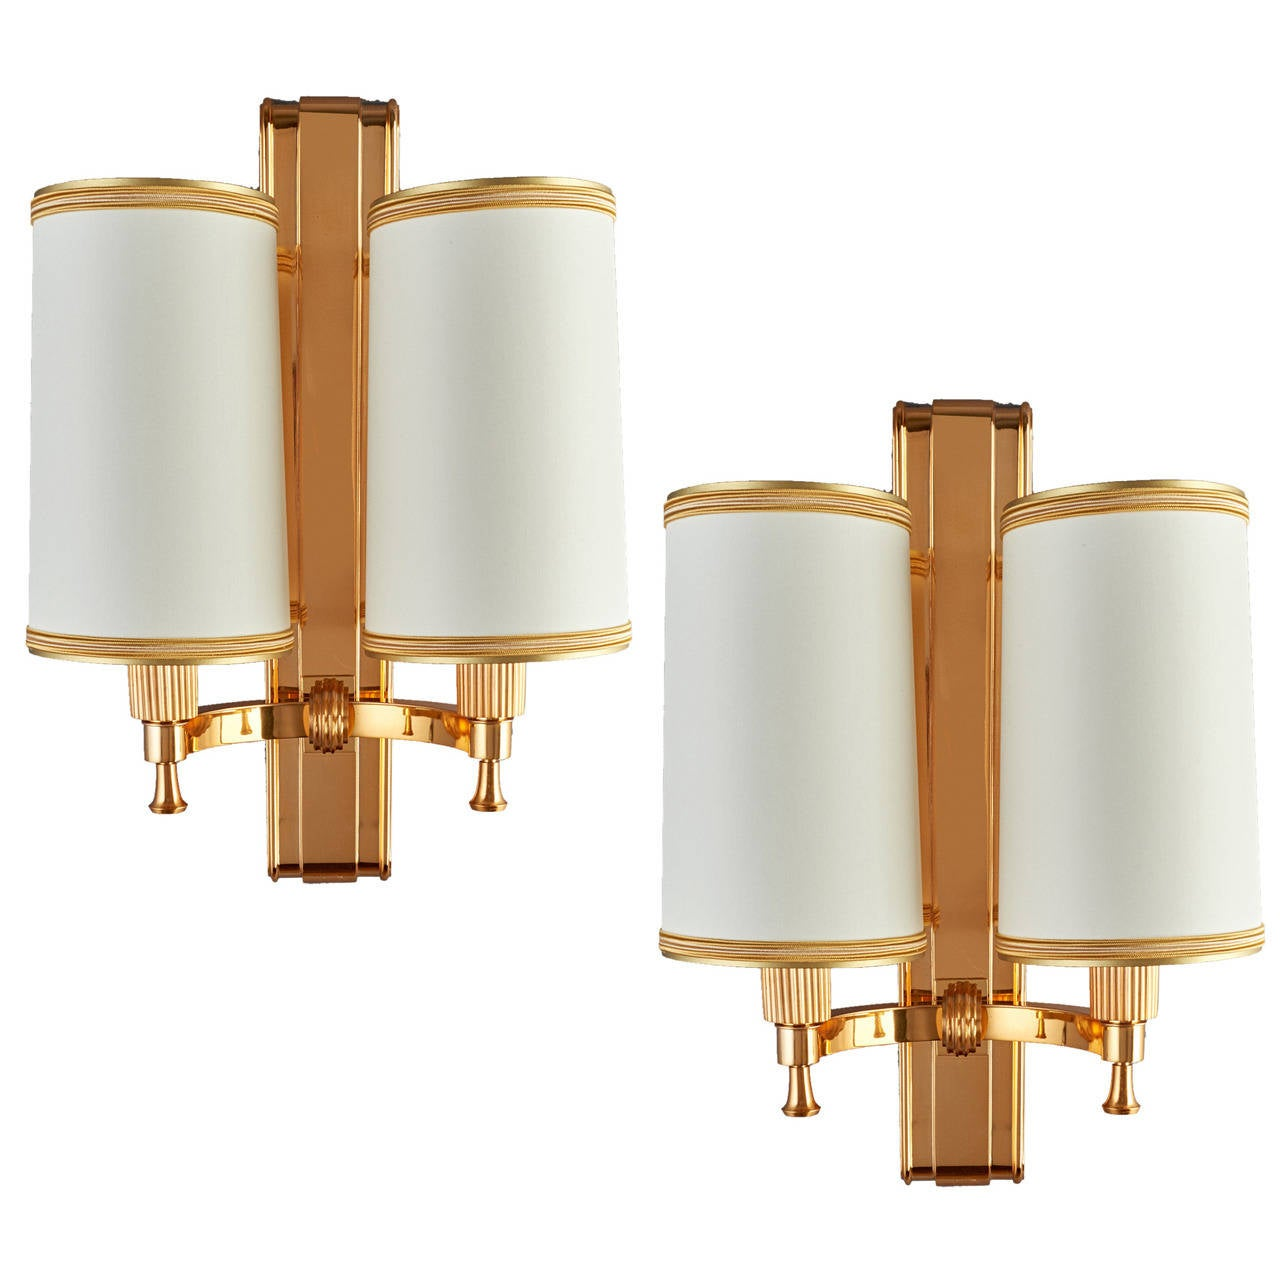 Elegant 1940's Bronze Sconces by Maxime Old 1